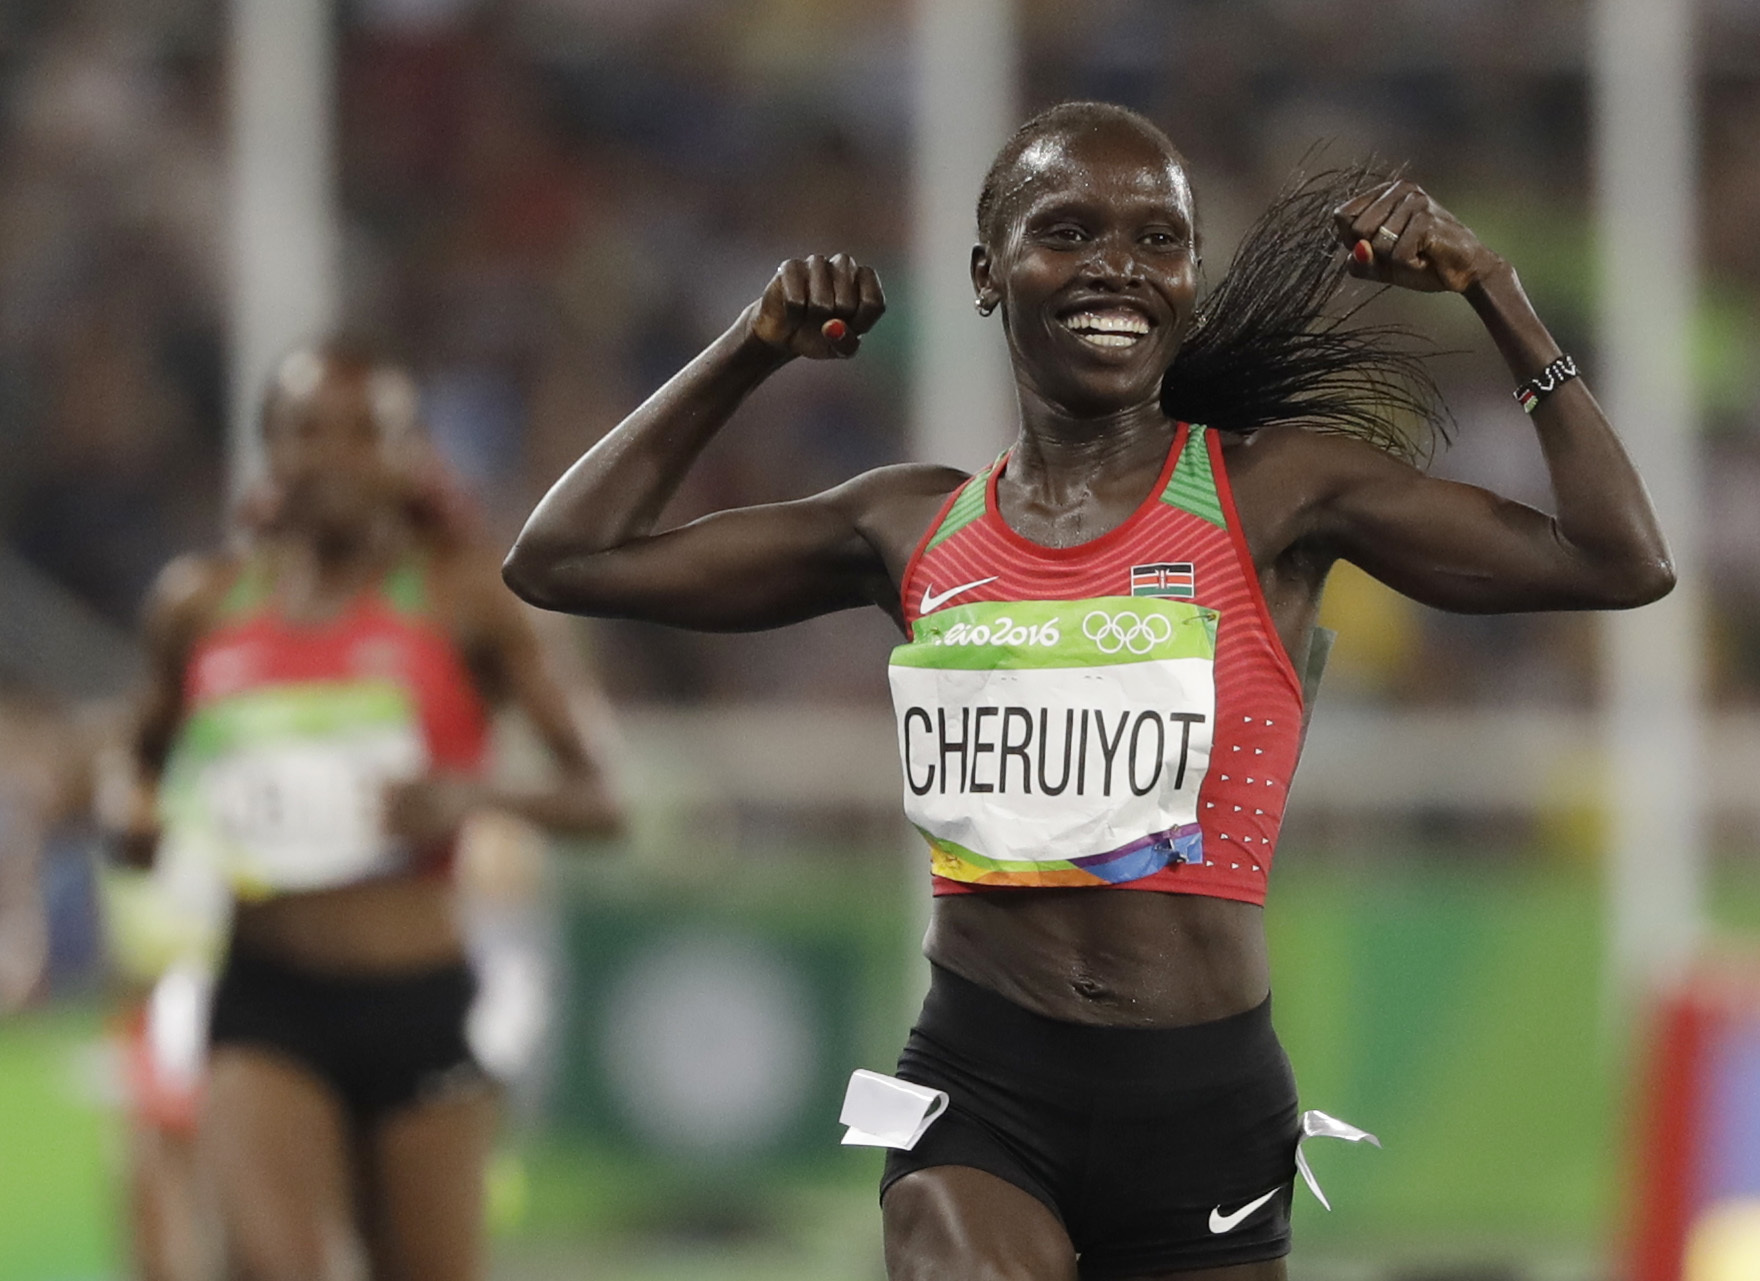 Kenya's Vivian Jepkemoi Cheruiyot celebrates winning the gold medal and setting a new Olympic record in the women's 5000-meter final during the athletics competitions of the 2016 Summer Olympics at the Olympic stadium in Rio de Janeiro, Brazil, Friday, Au